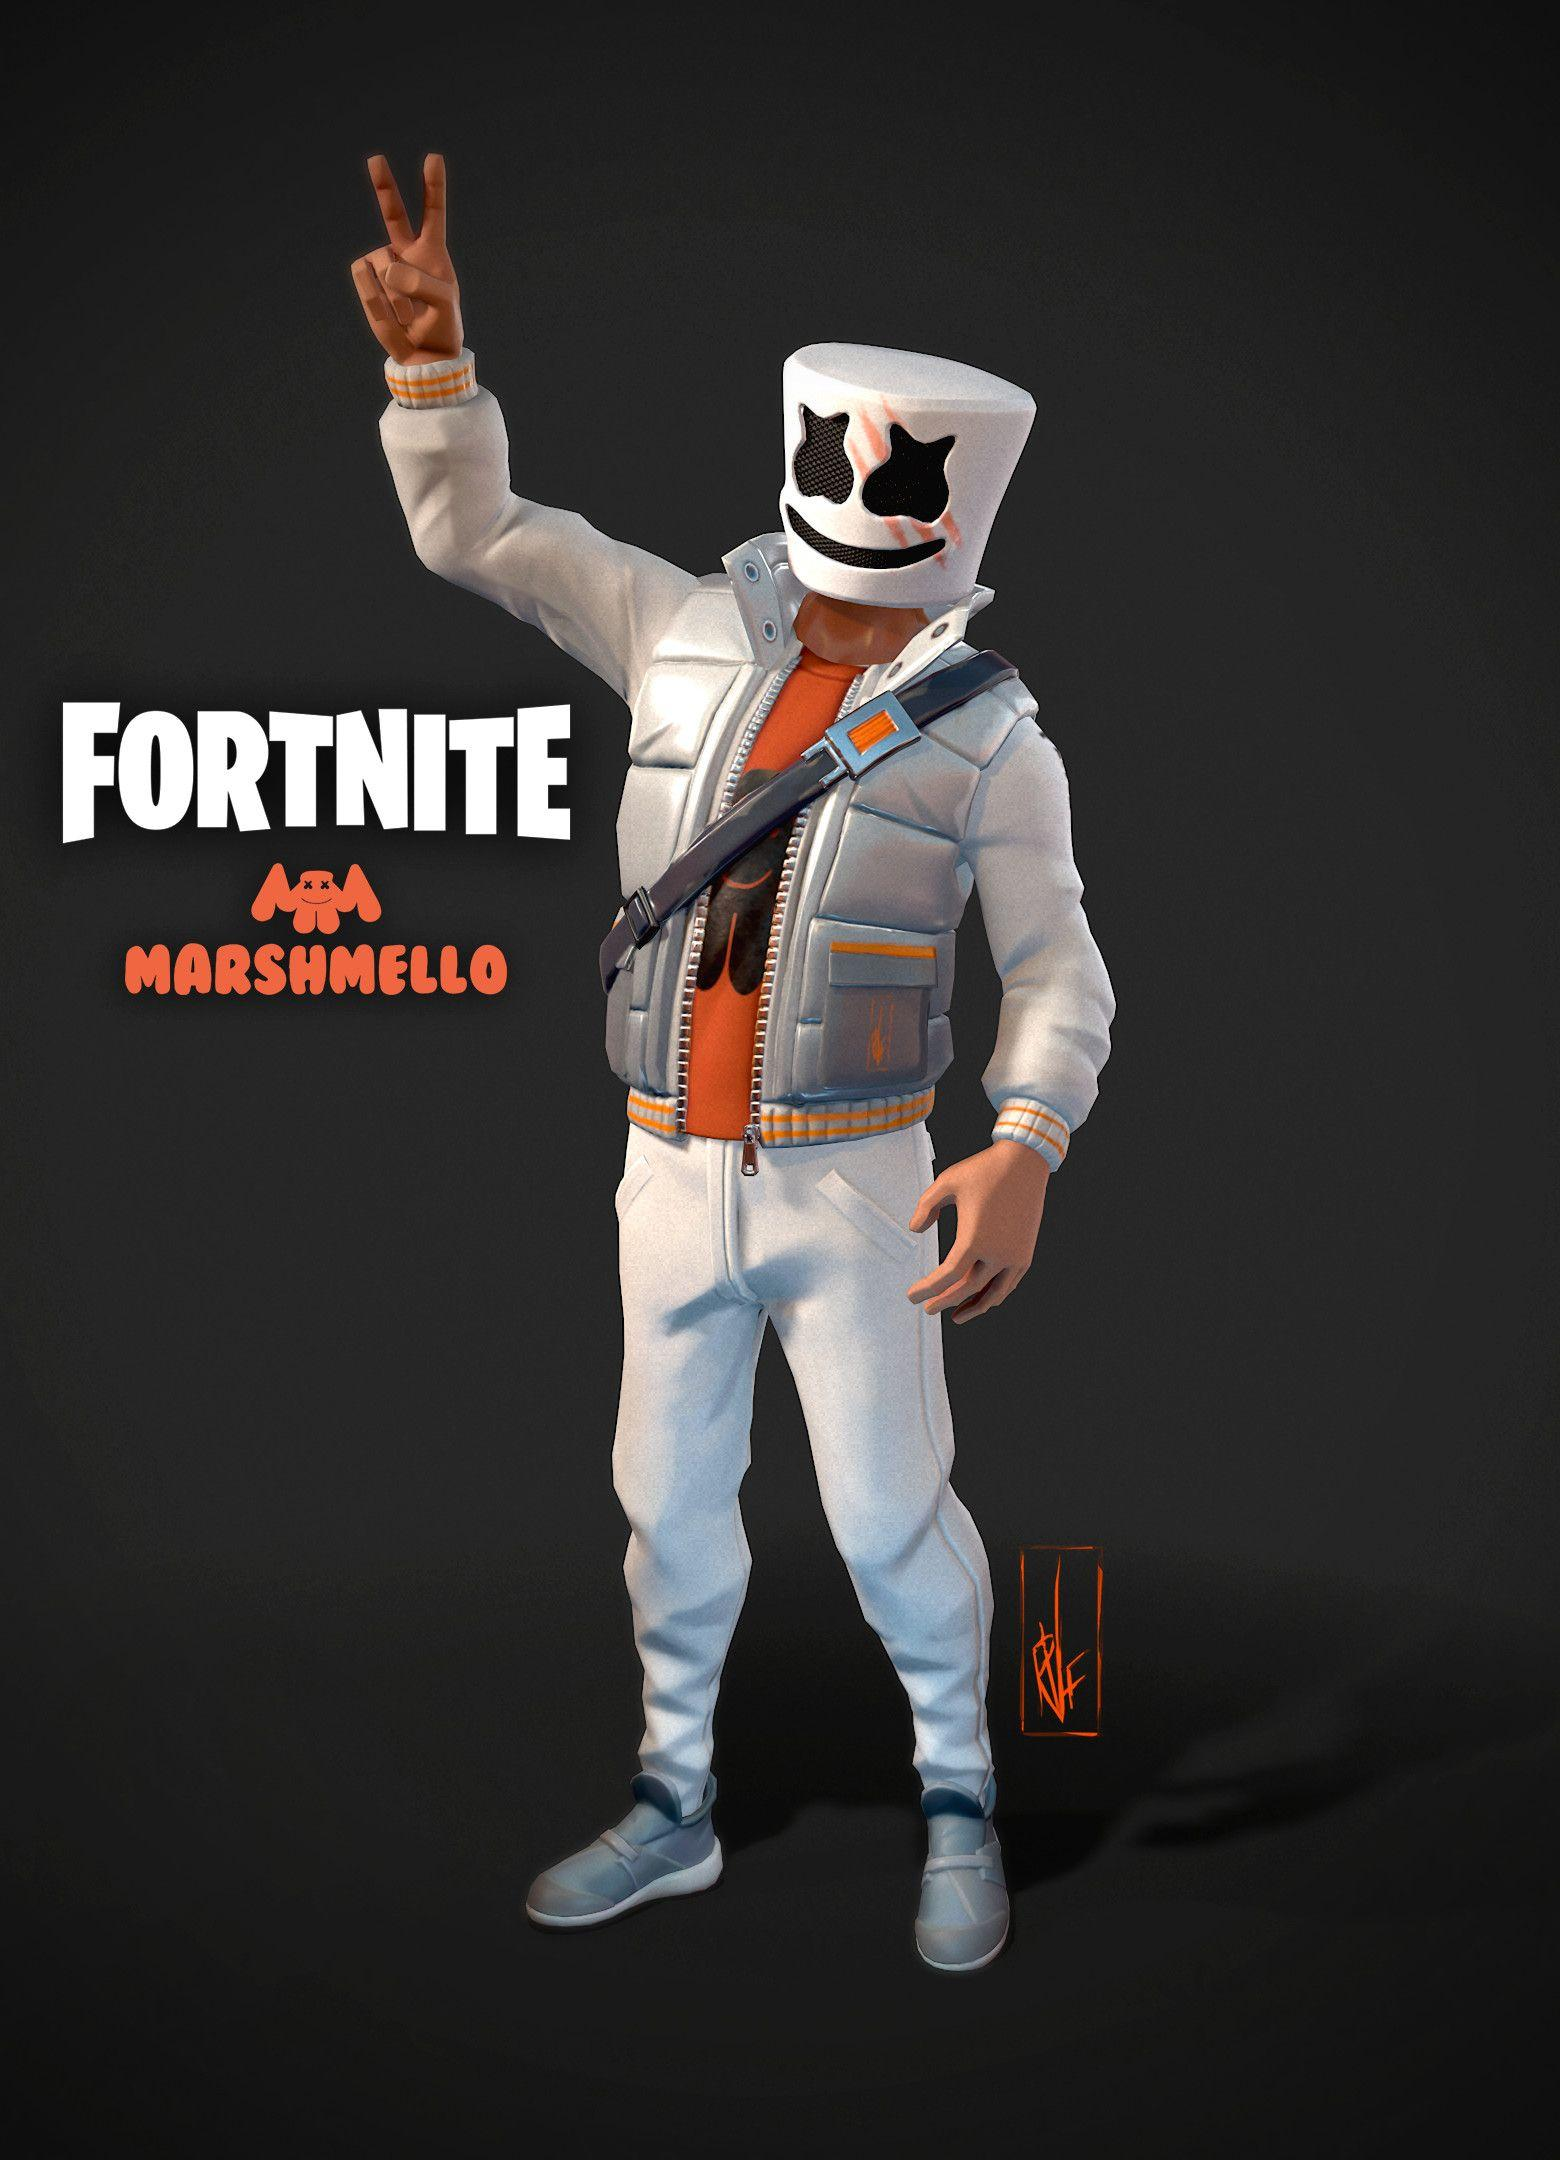 Marshmello Fortnite Wallpapers - Wallpaper Cave